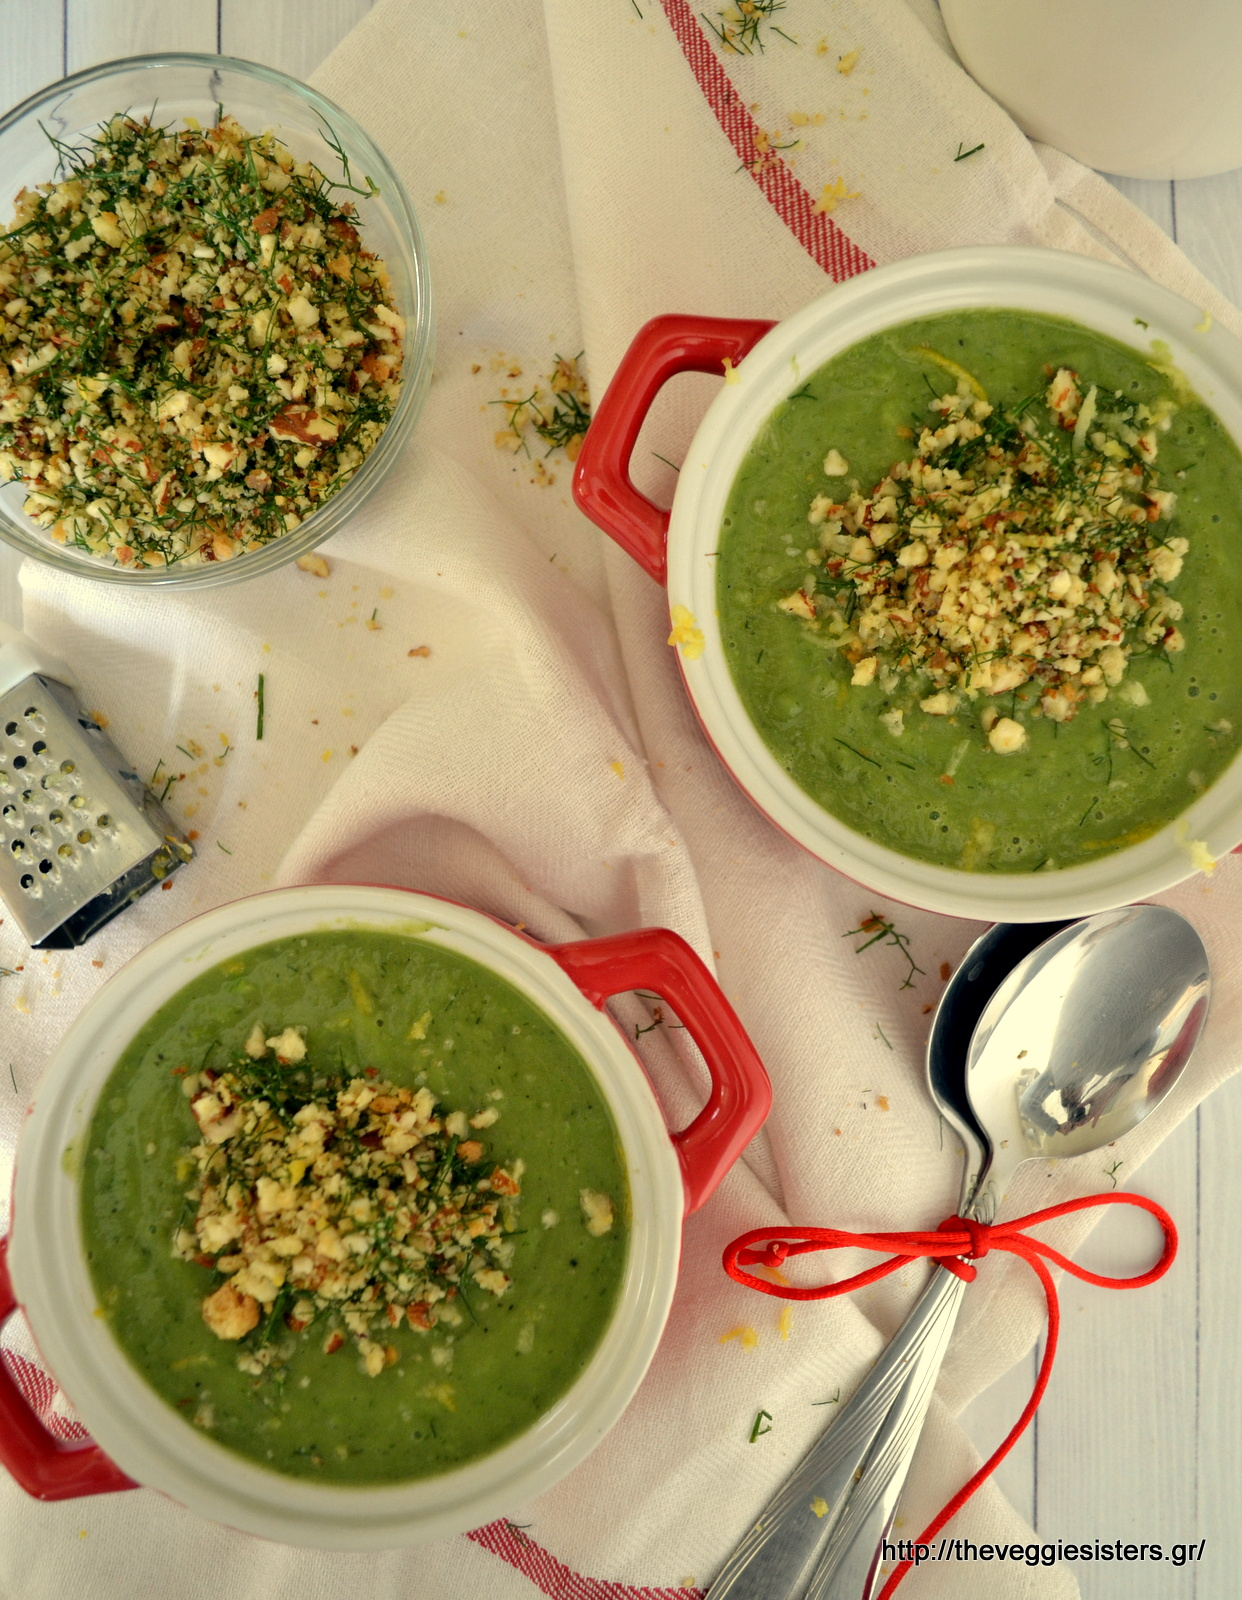 Creamy pea soup with almond crumbs